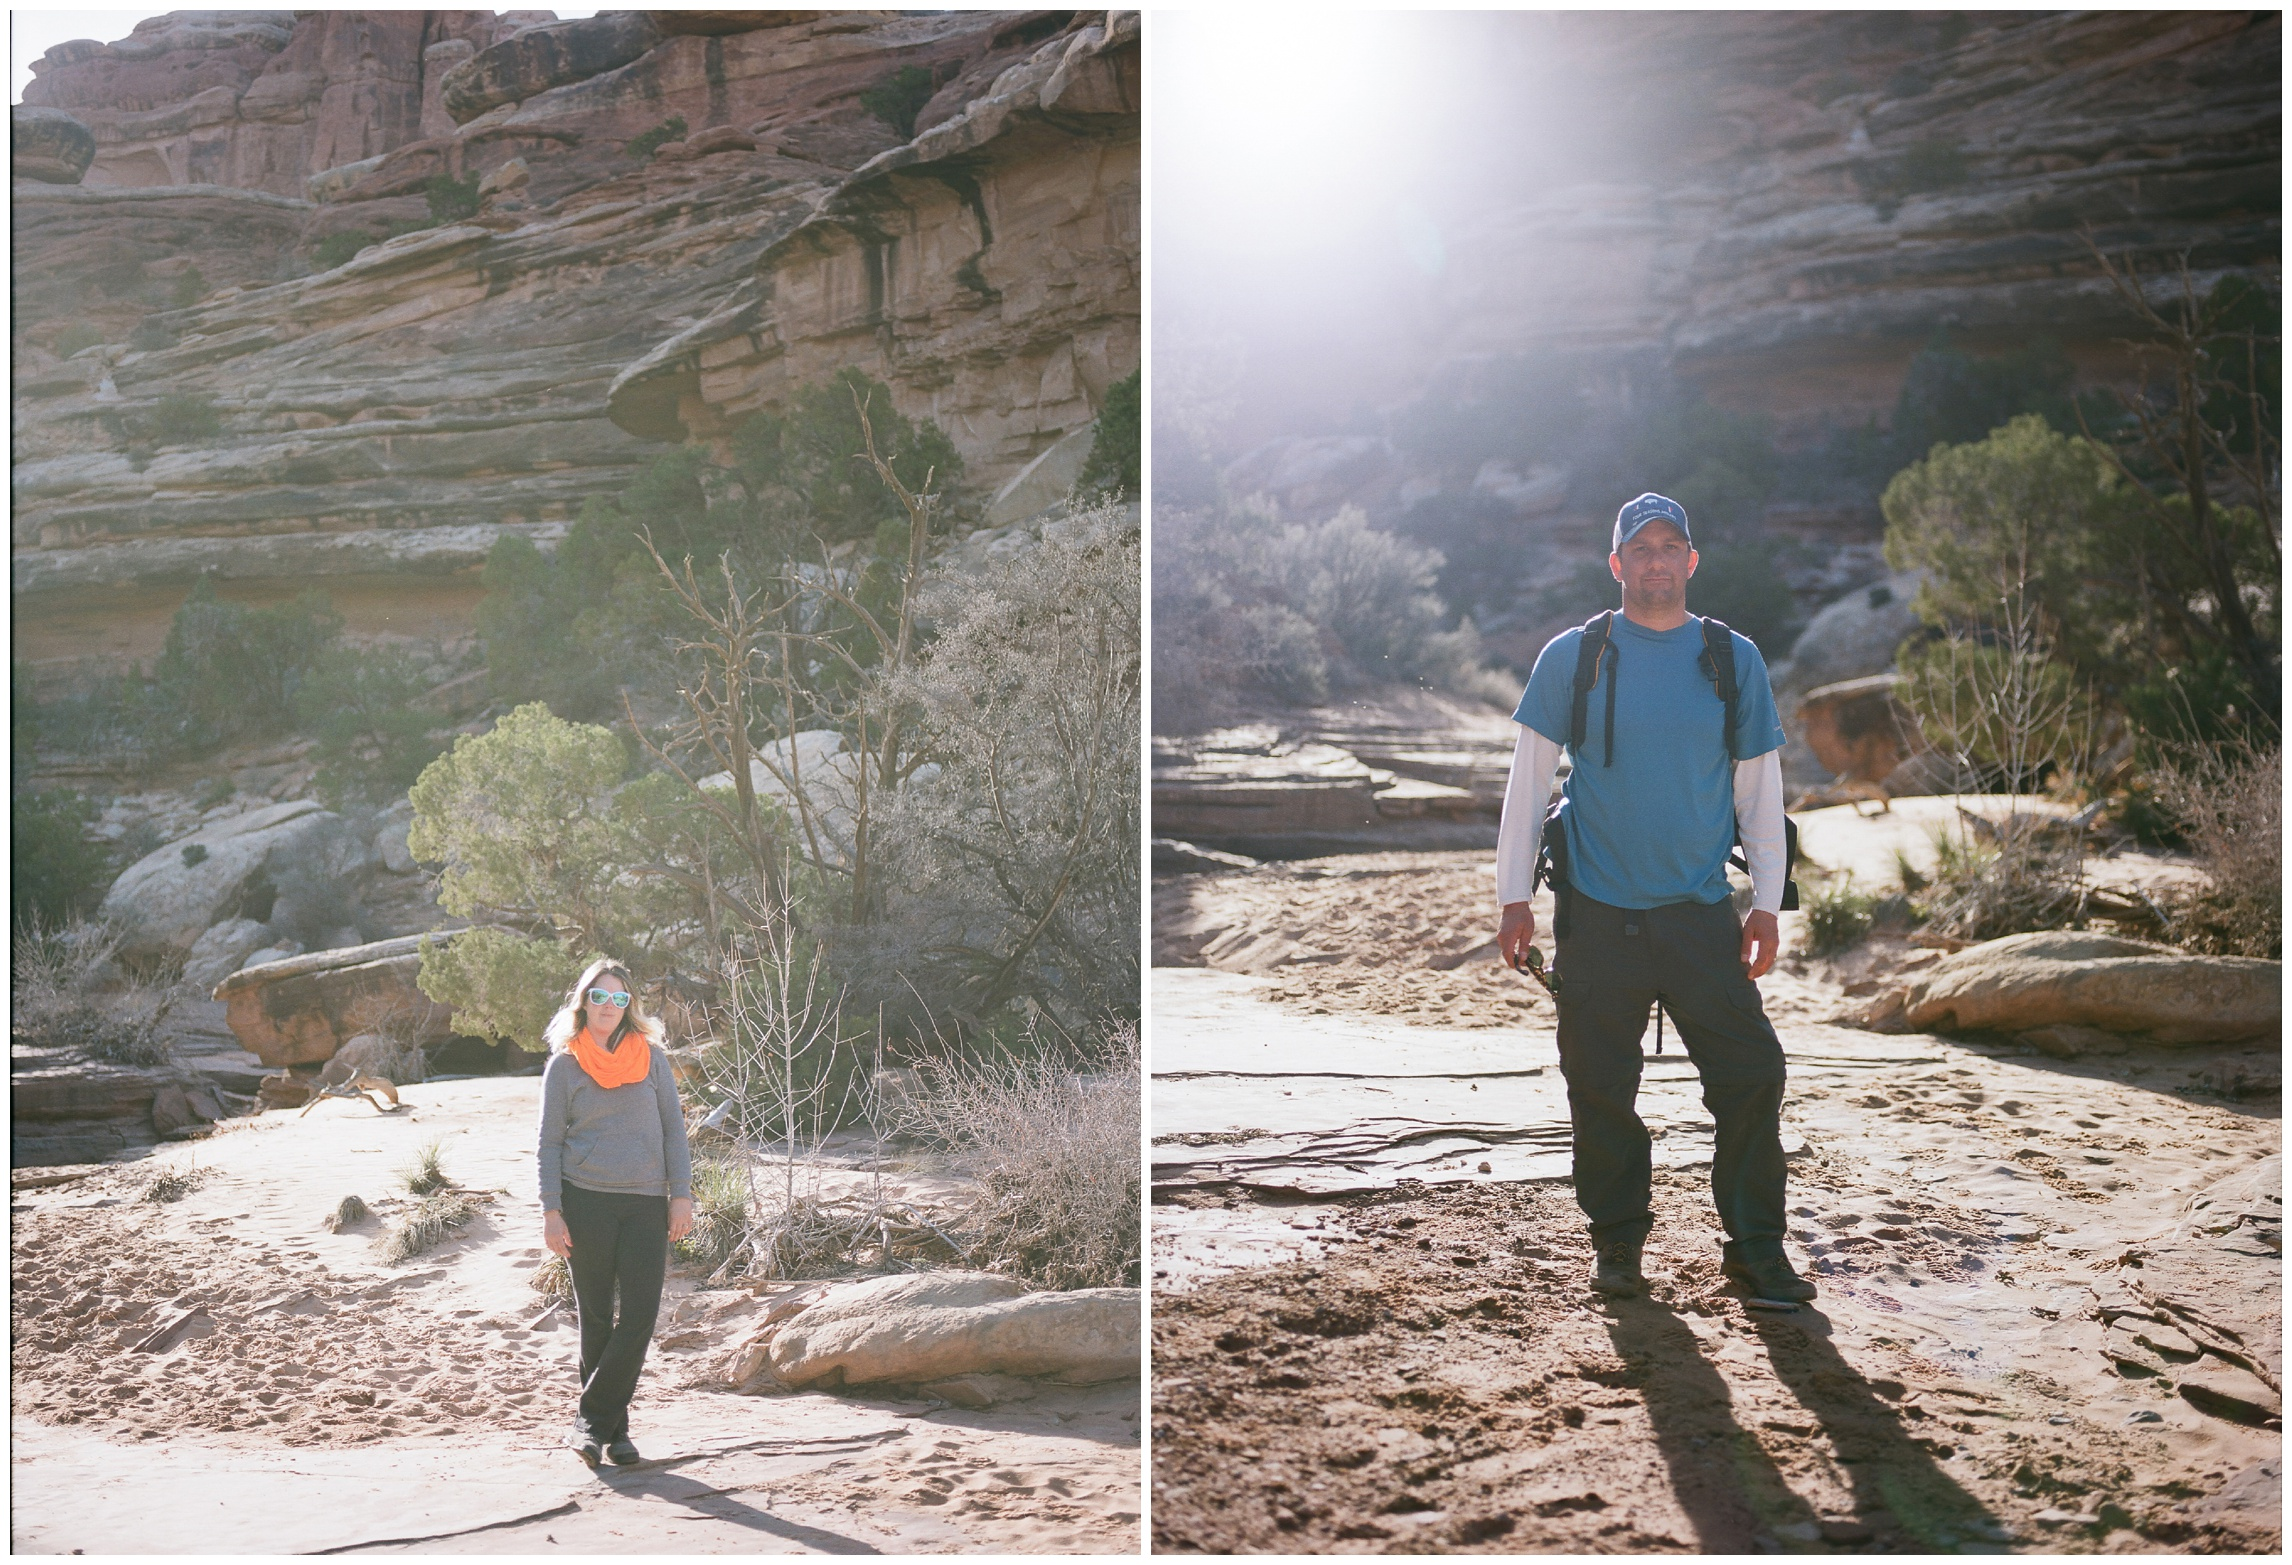 Sonja and Max Salzburg in Elephant Canyon, Canyonlands National Park on a warm spring day. Film photography by Max and Sonja Salzburg of Sonja K Photography.